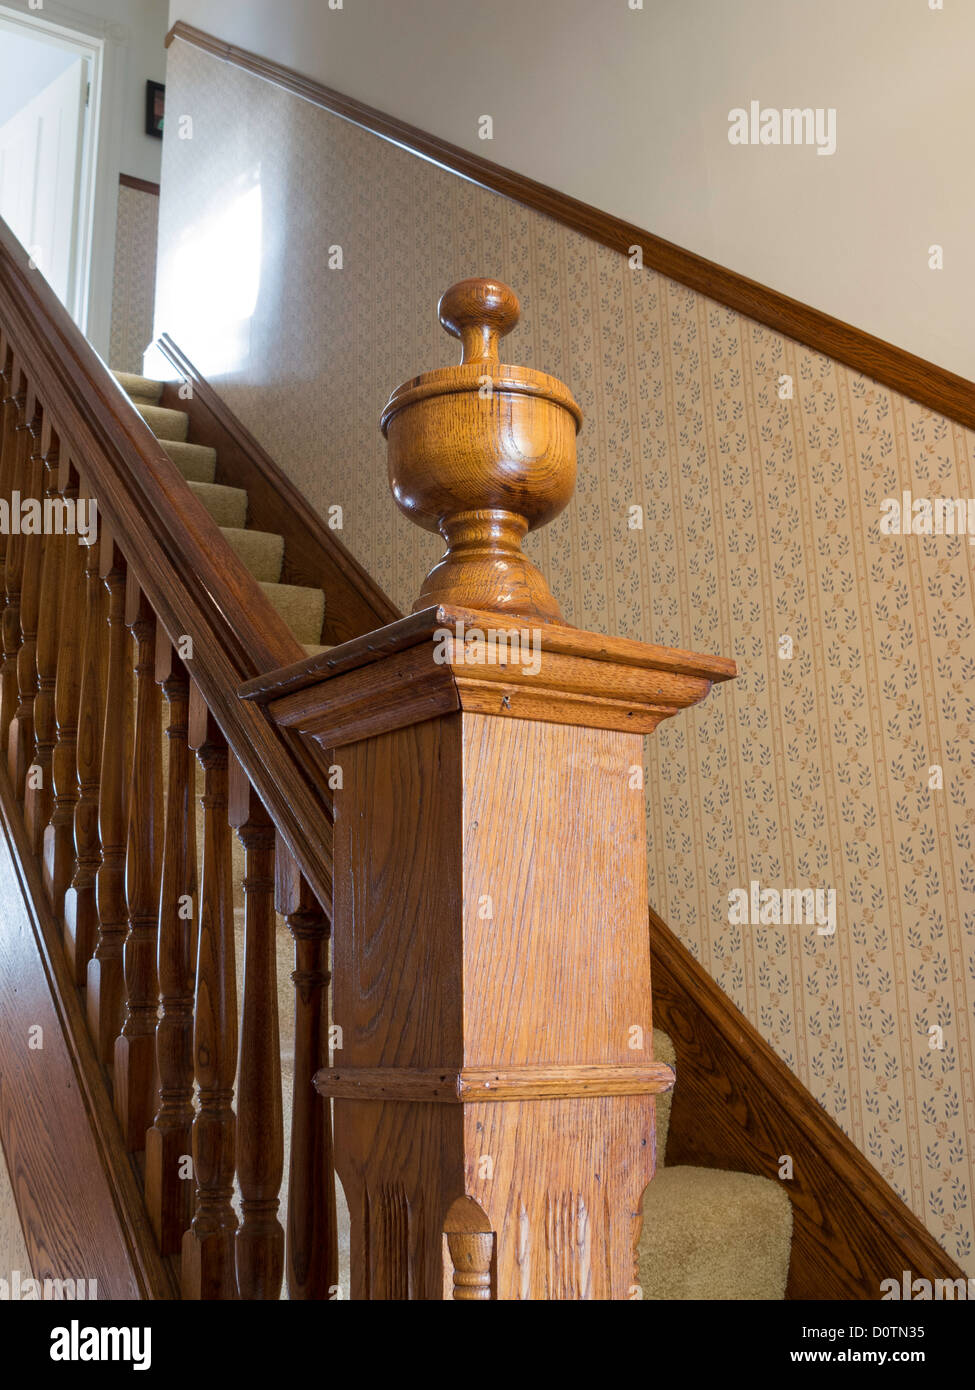 Decorative Finial On Newel Post ,Balustrade And Staircase, Residential  House   Stock Photo